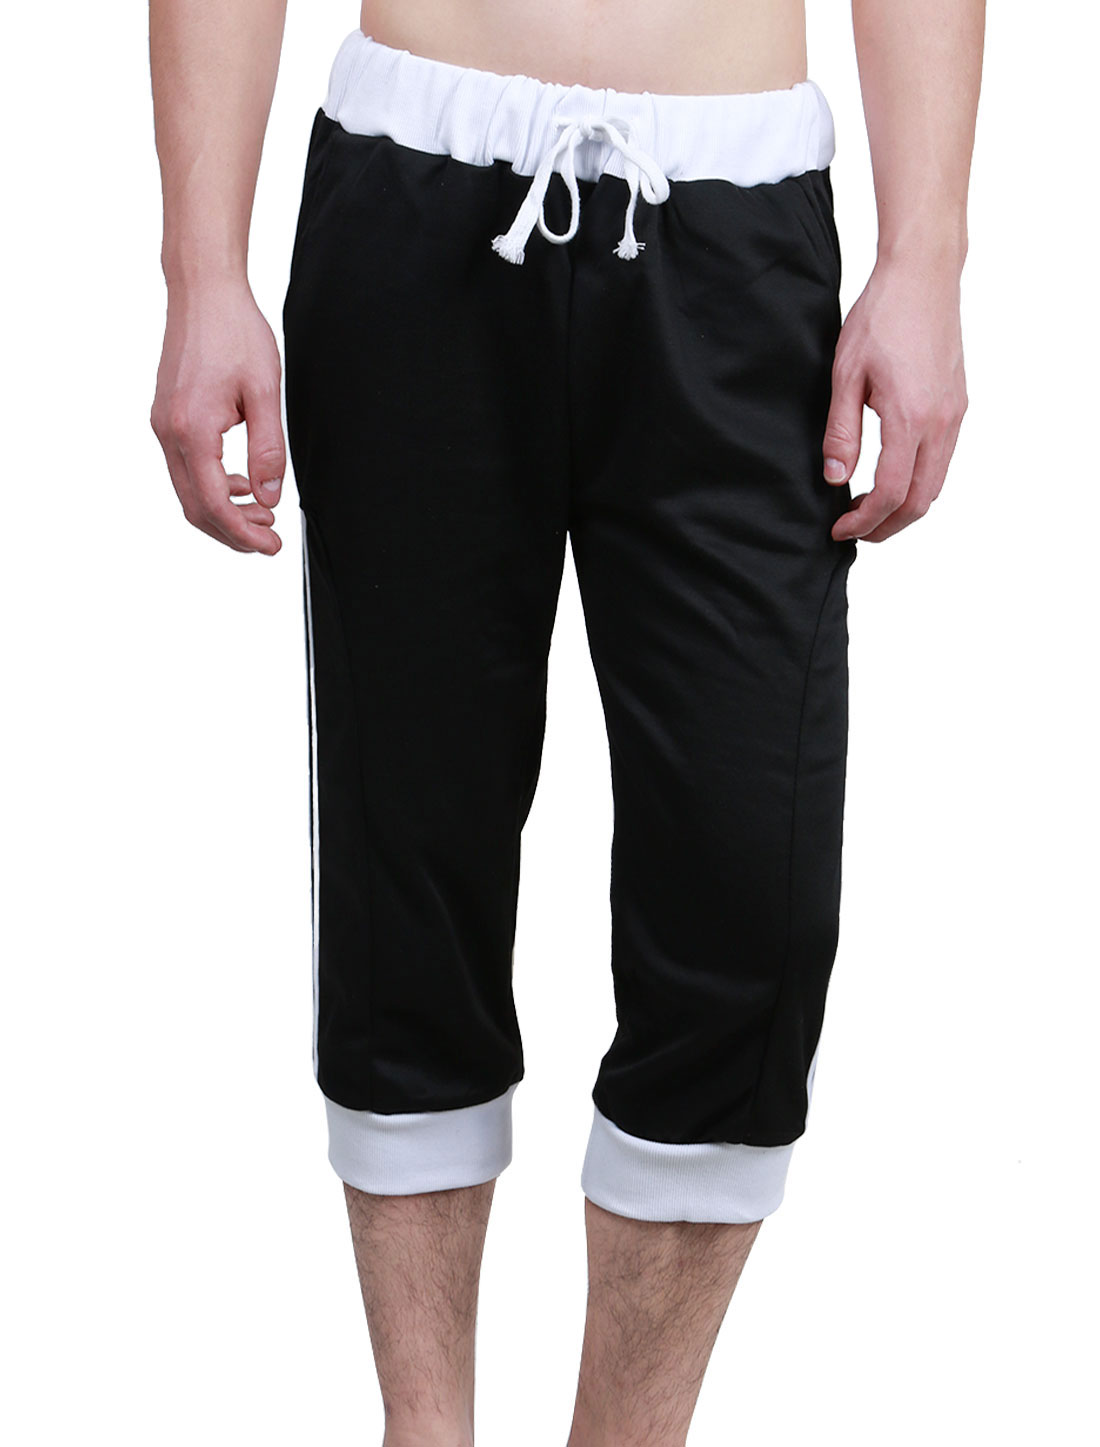 Men Drawstring Waist Slant Pockets Sport Capris Trousers Black White W34